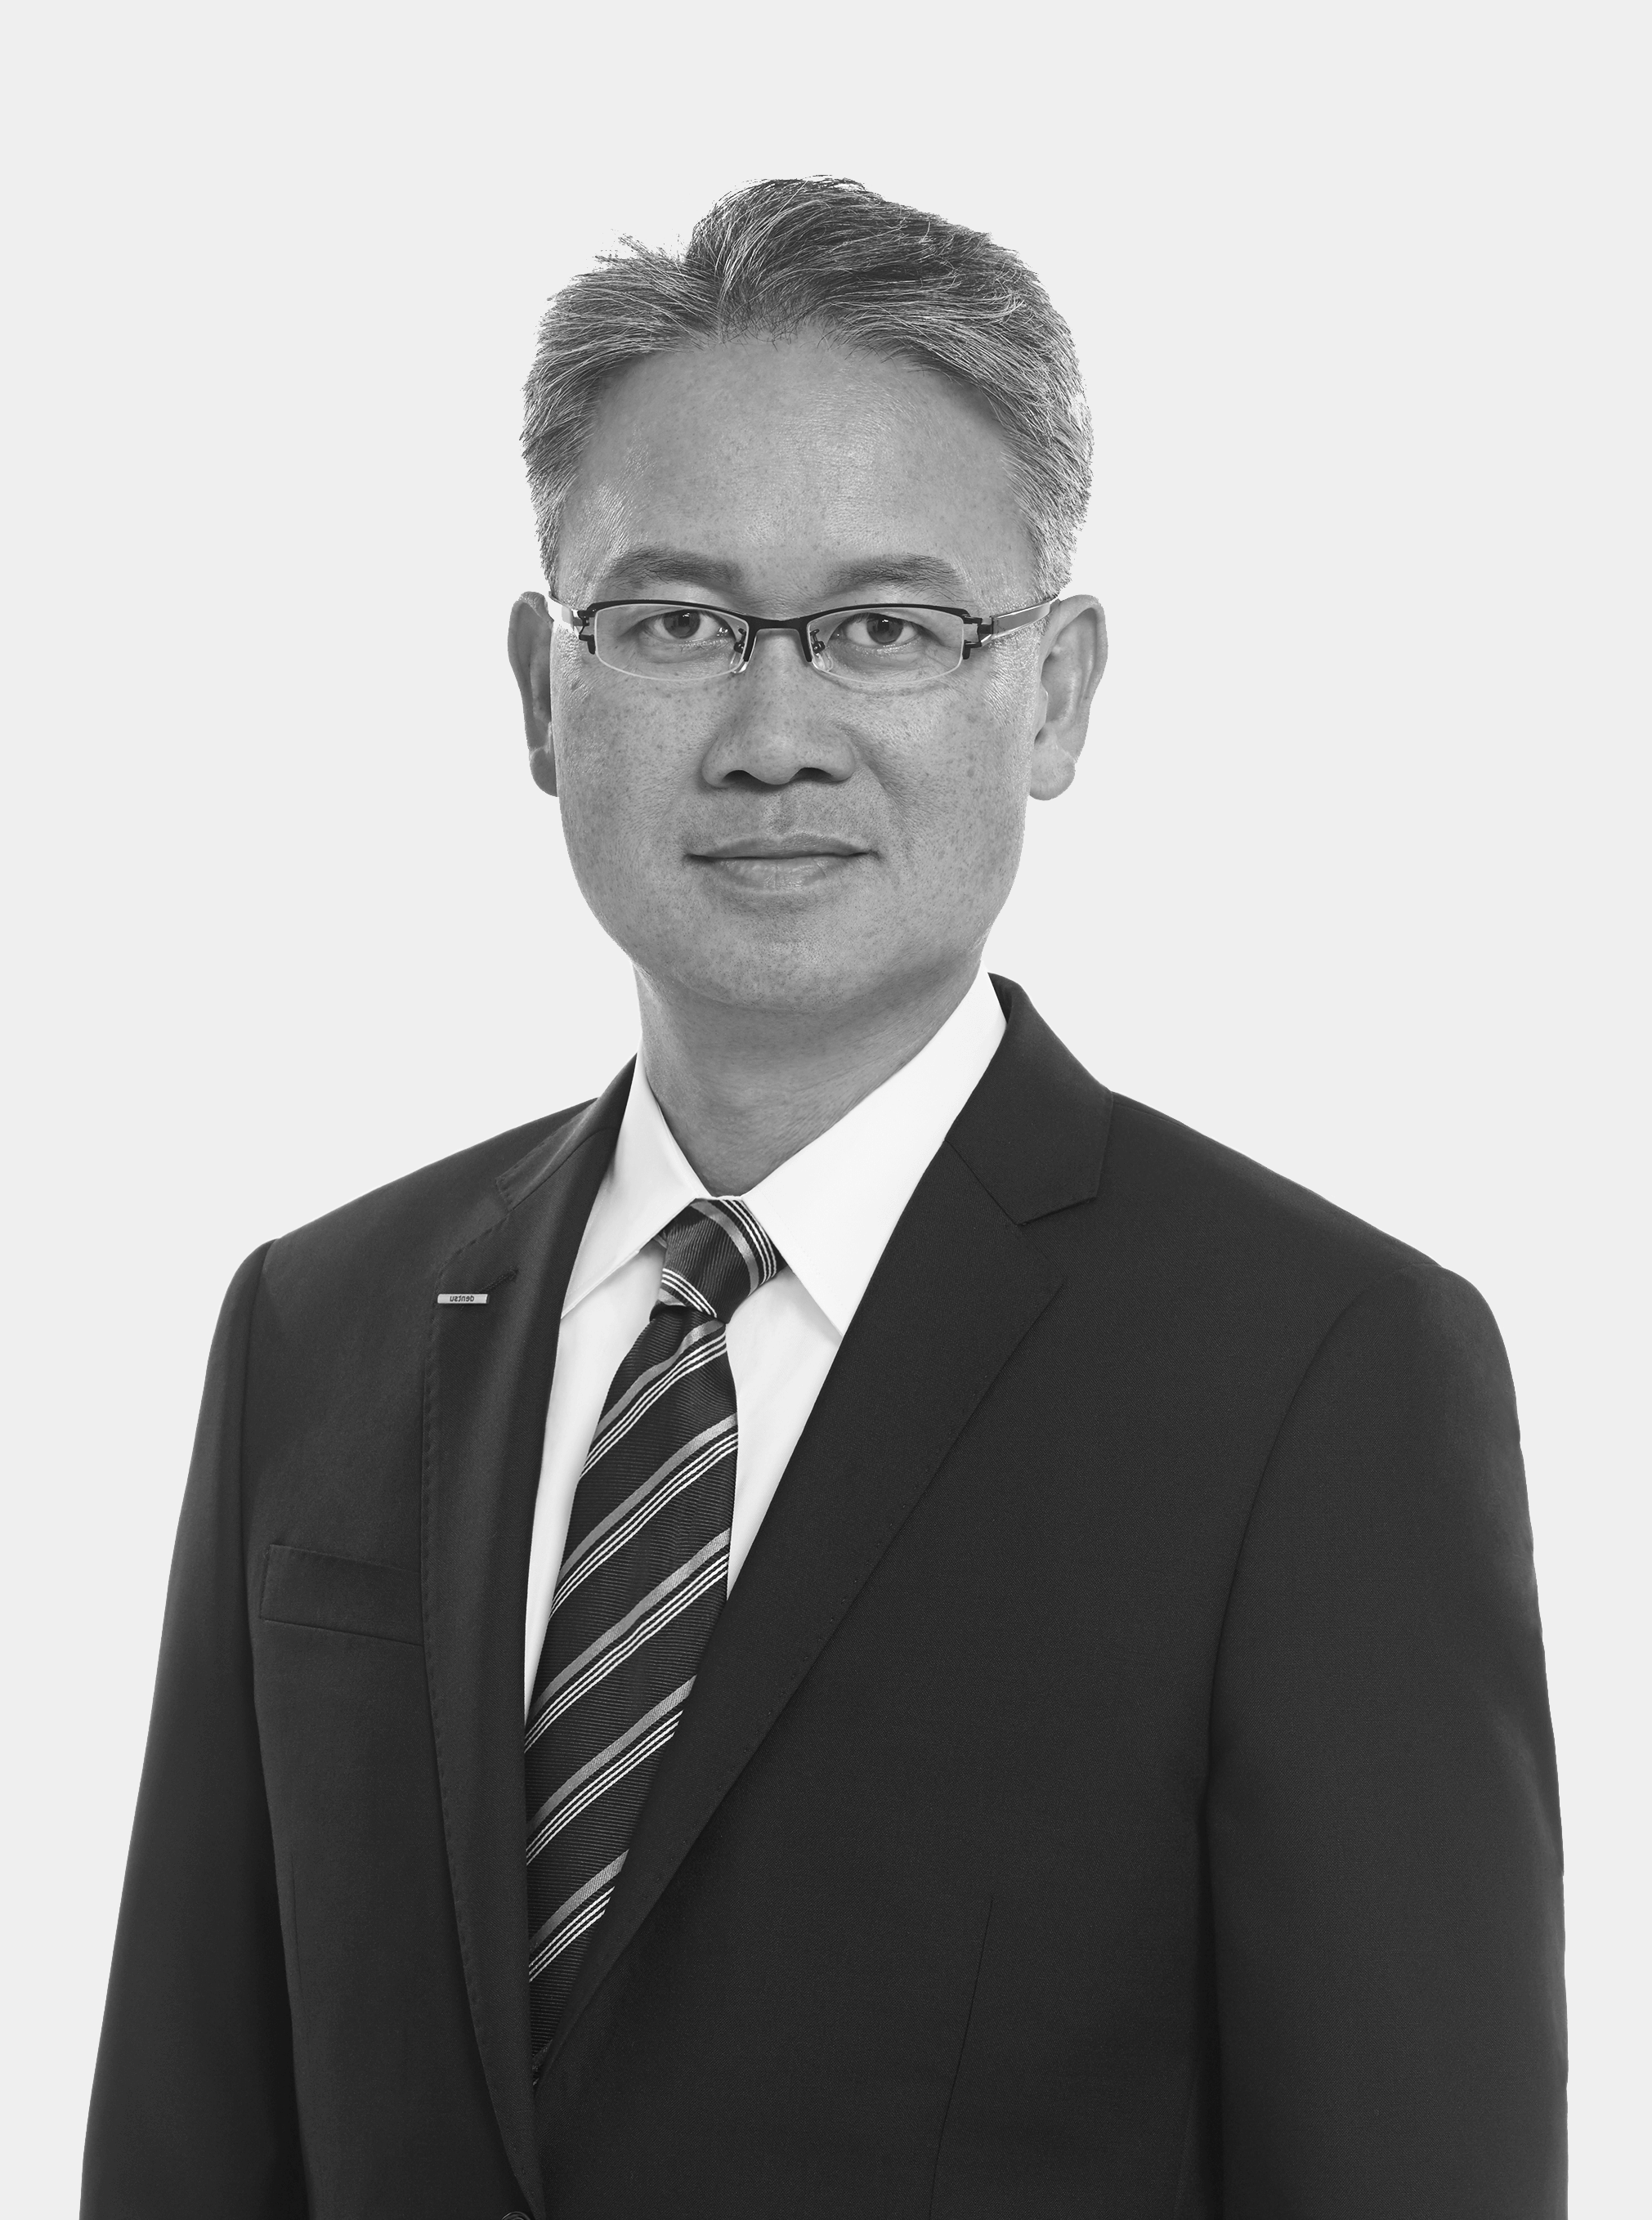 Yushin Soga, Director, Dentsu Inc.